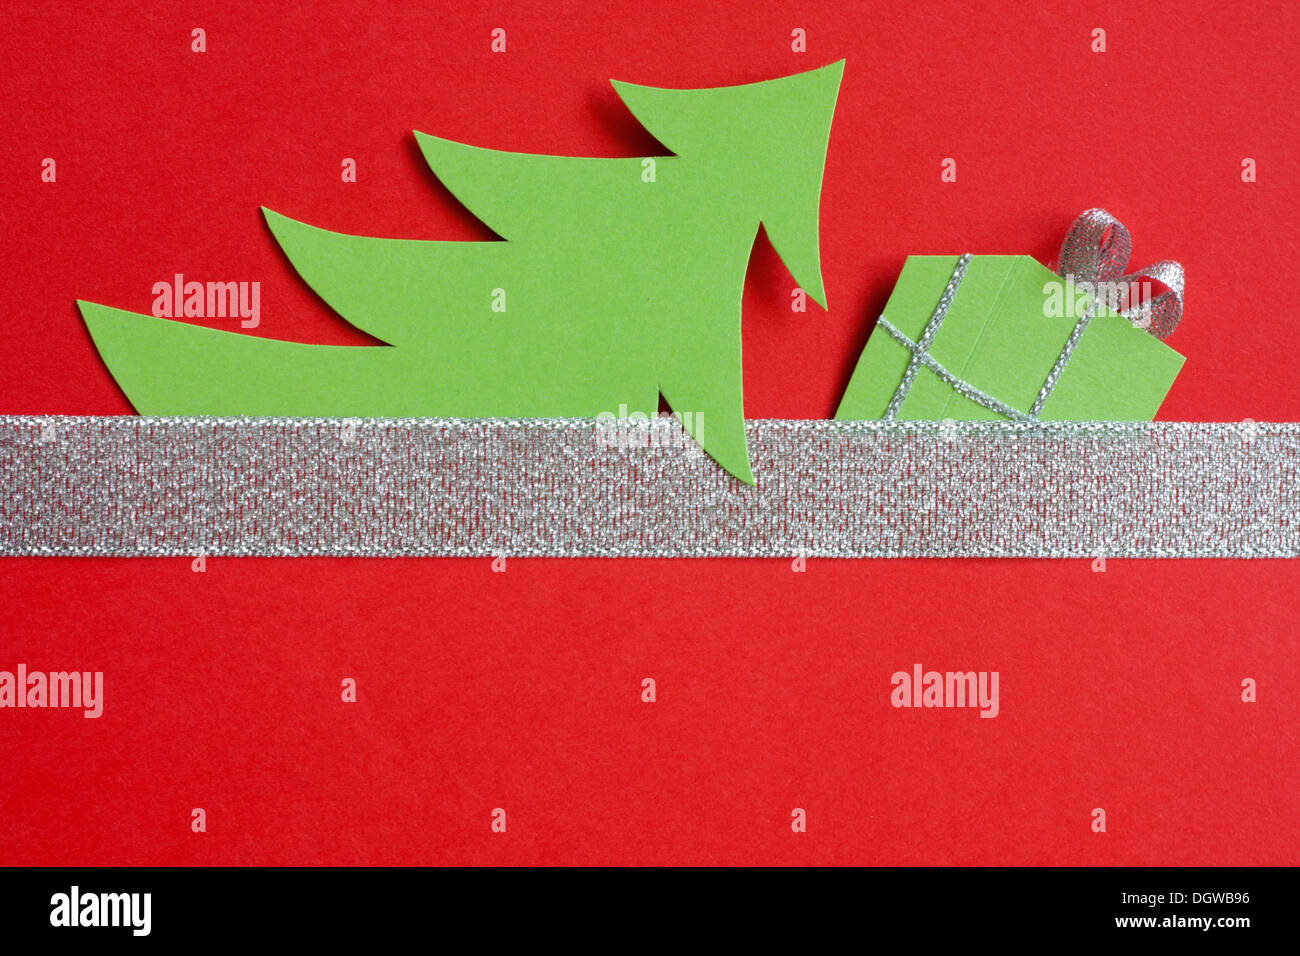 Christmas abstract paper tree on red background - Stock Image